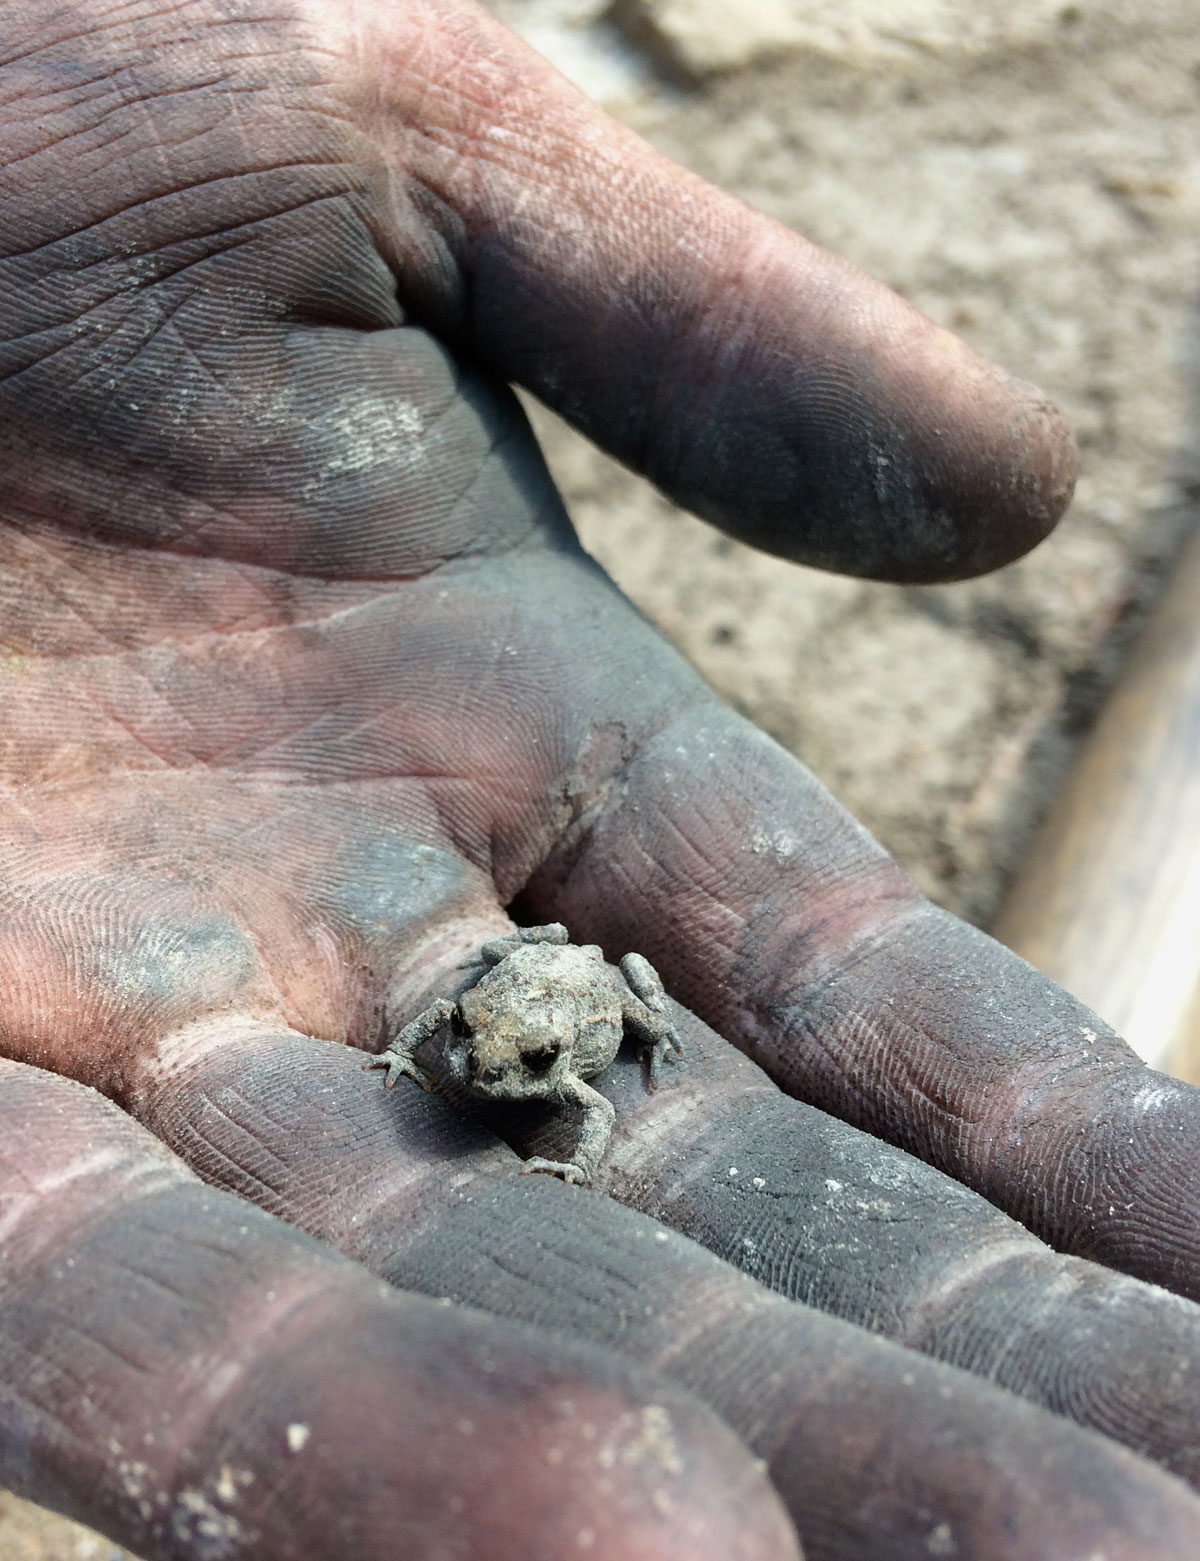 Frog covered in ash in hands of firefighters